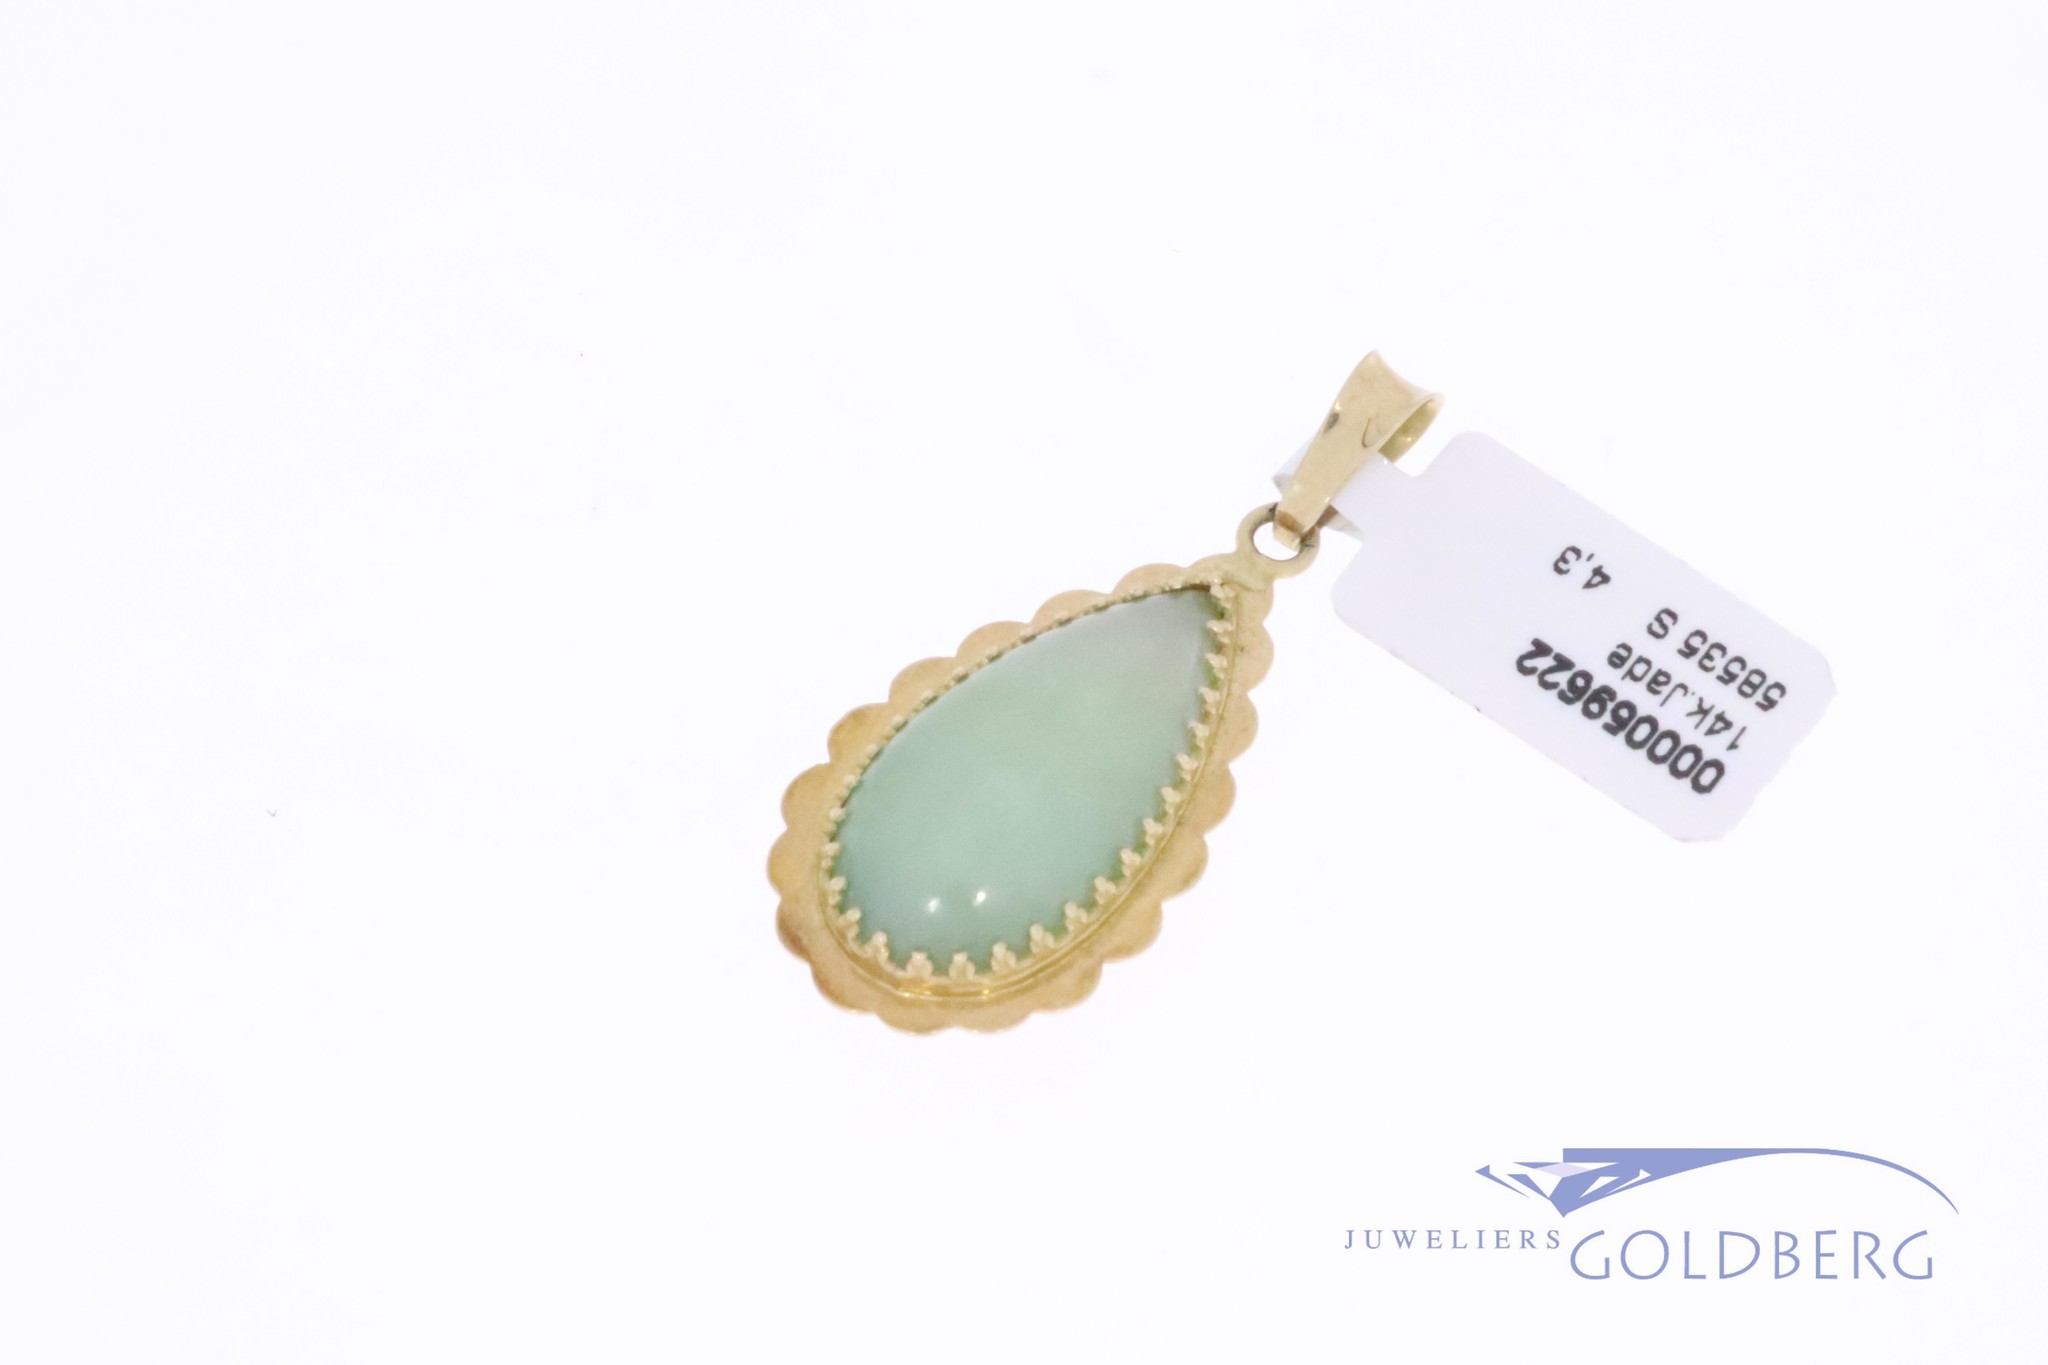 14k gold vintage drop shaped pendant with jade